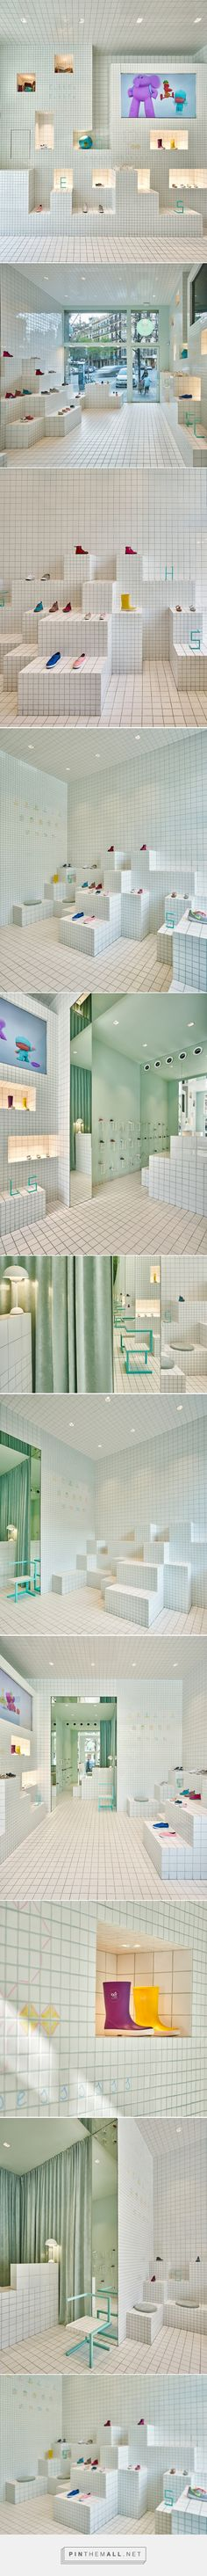 nabito architects covers children's shoe shop in barcelona with a grid of tiles - created via http://pinthemall.net